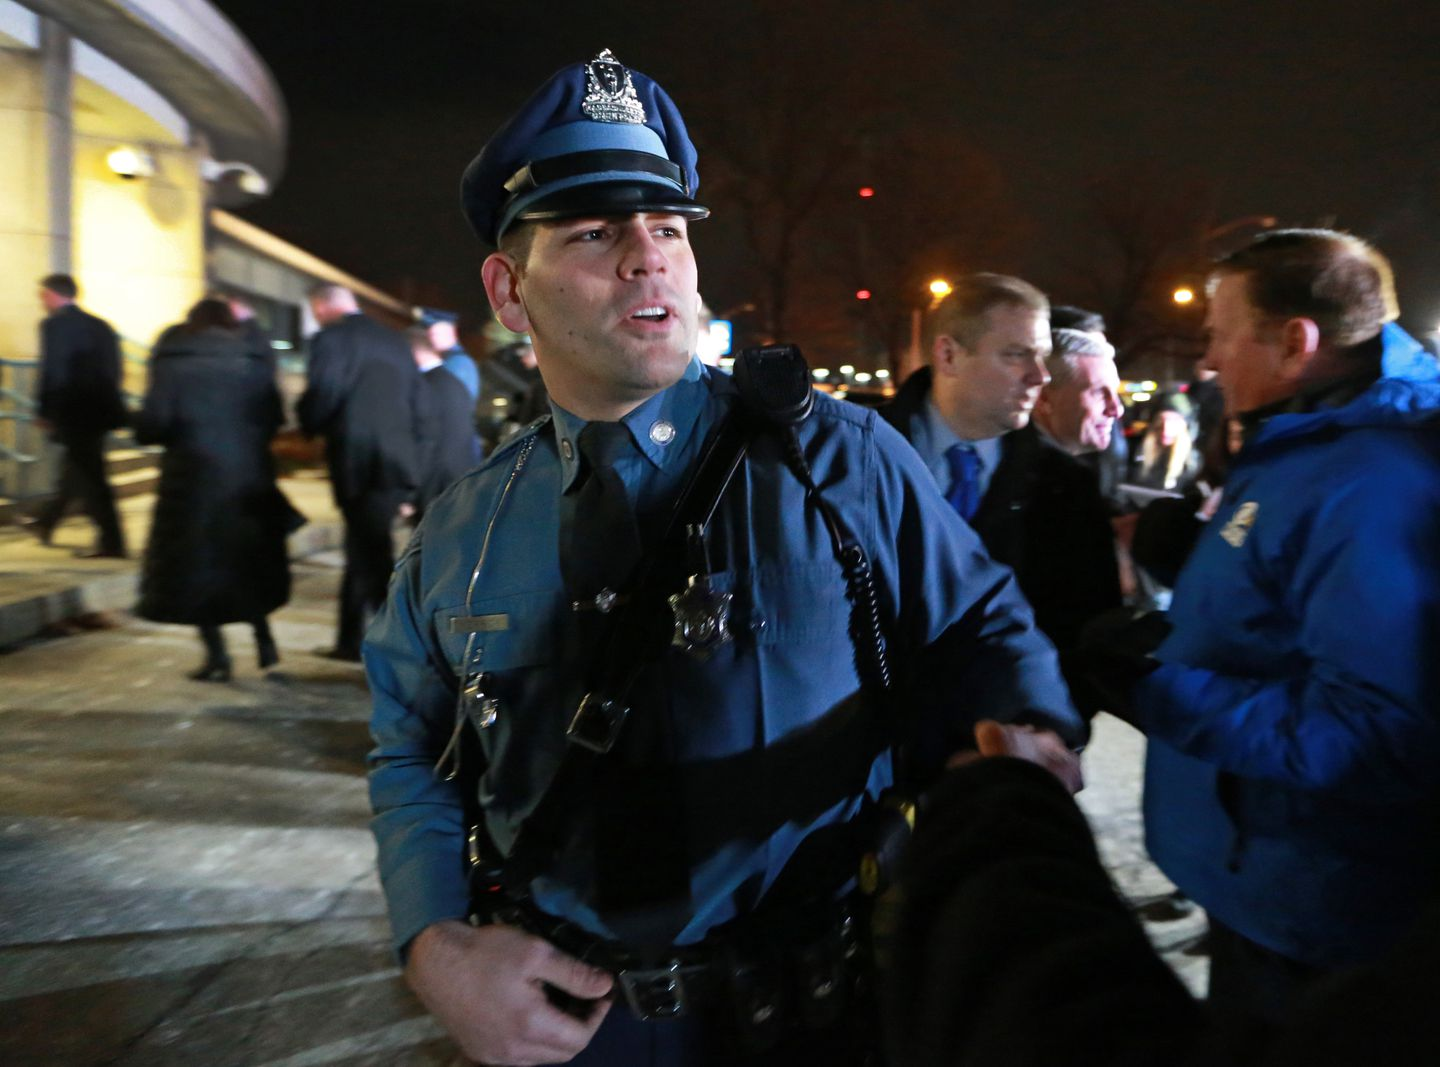 39e553a938bc Mass. trooper snares R.I. fugitive after 5-day manhunt - The Boston ...